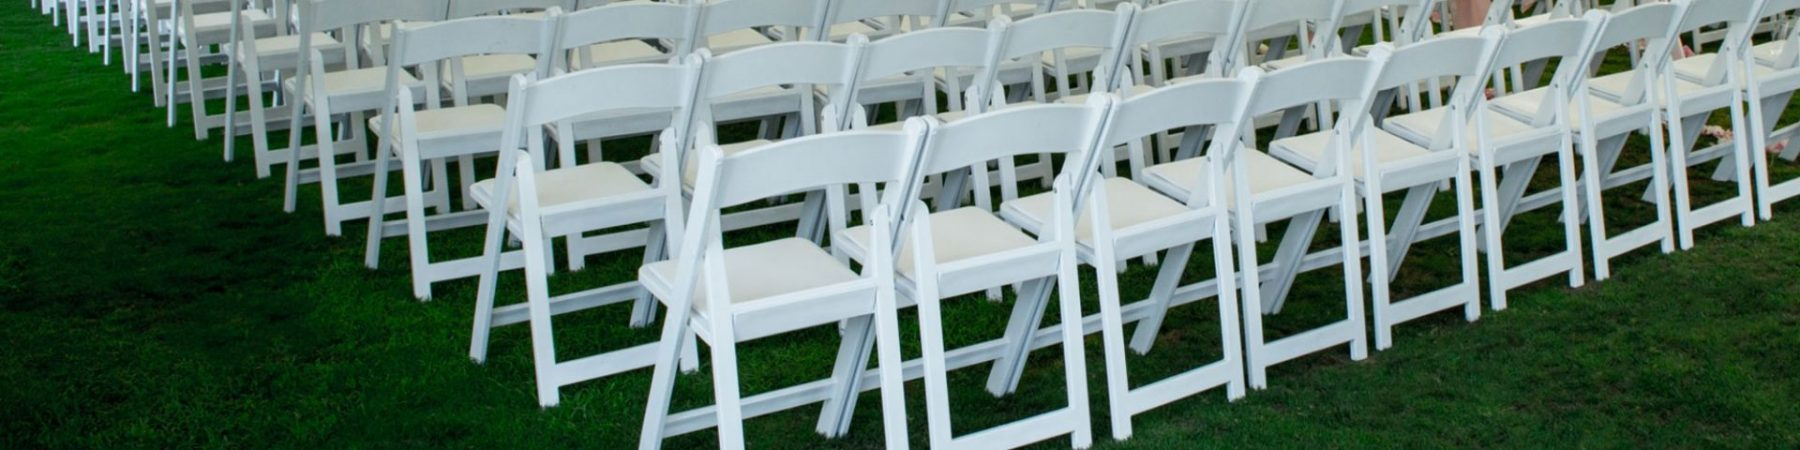 chair rentals for events